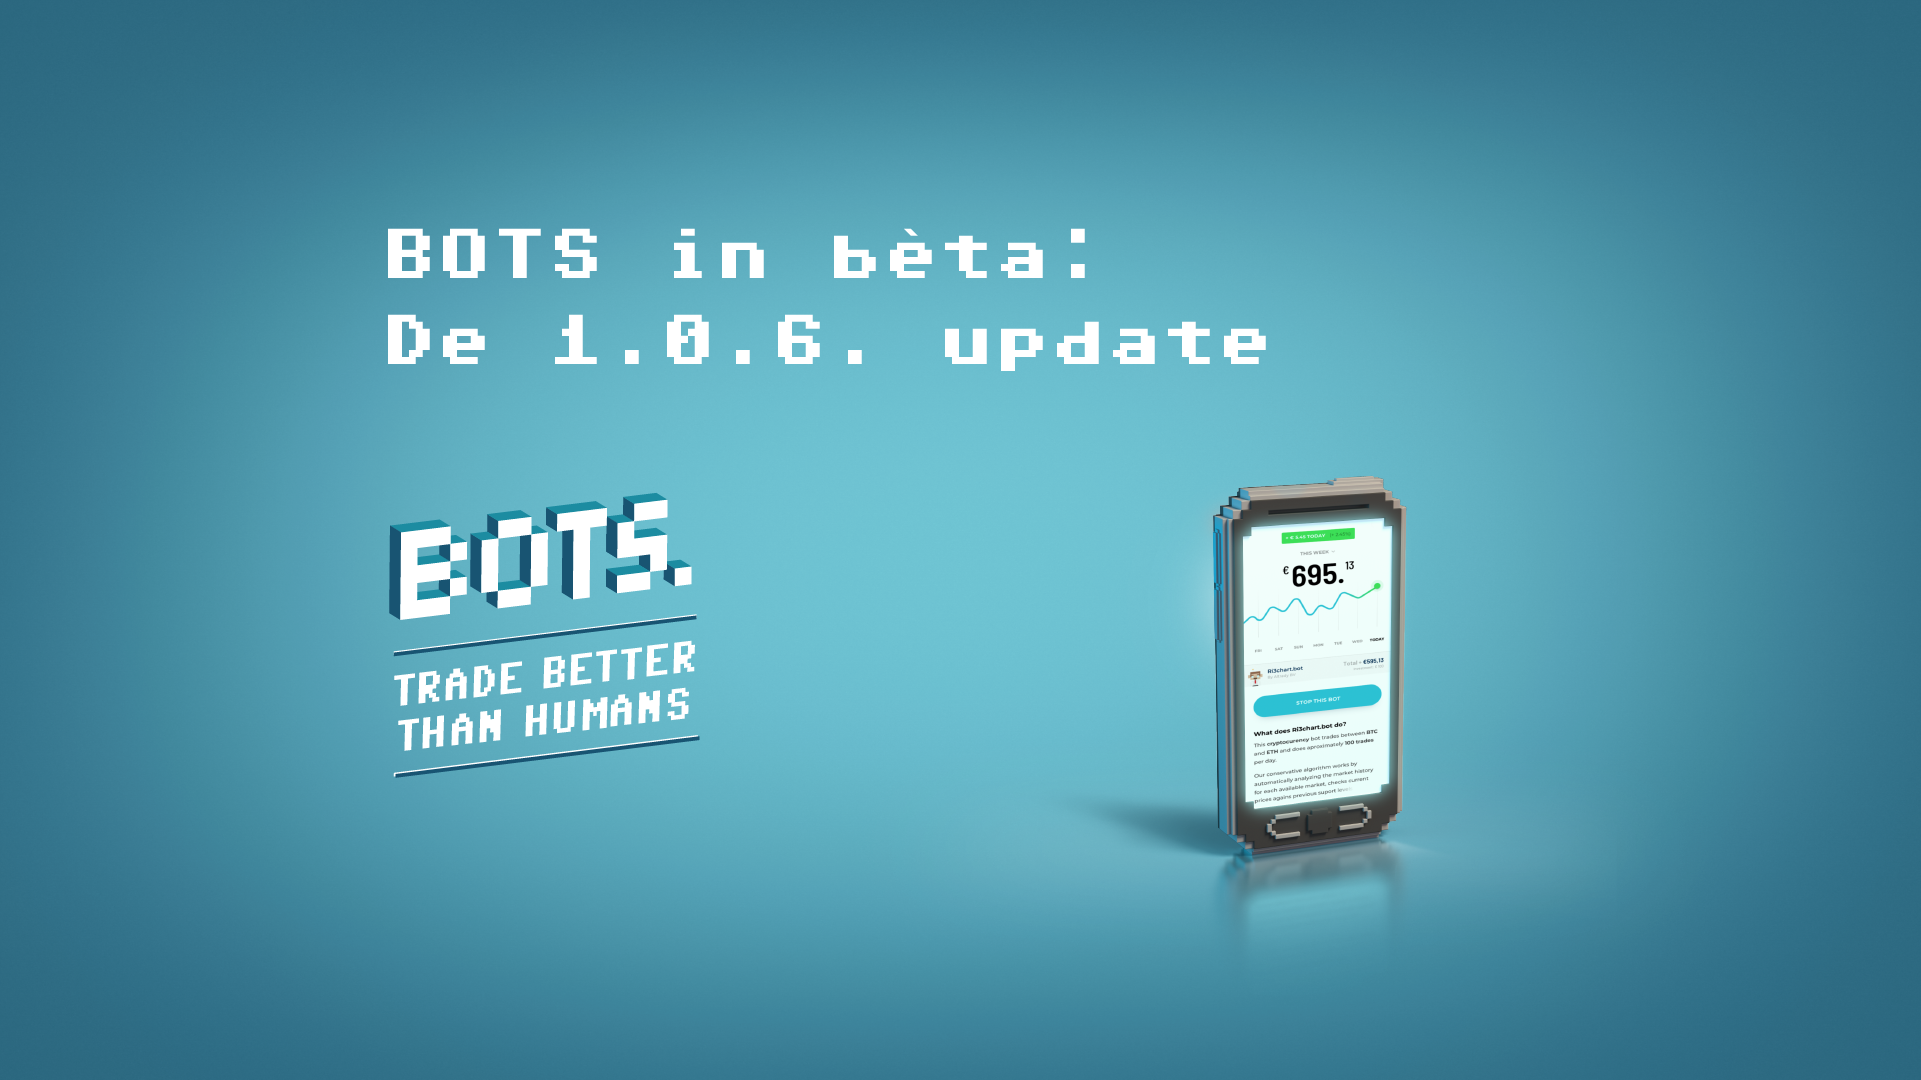 BOTS in beta: The 1.0.6. update